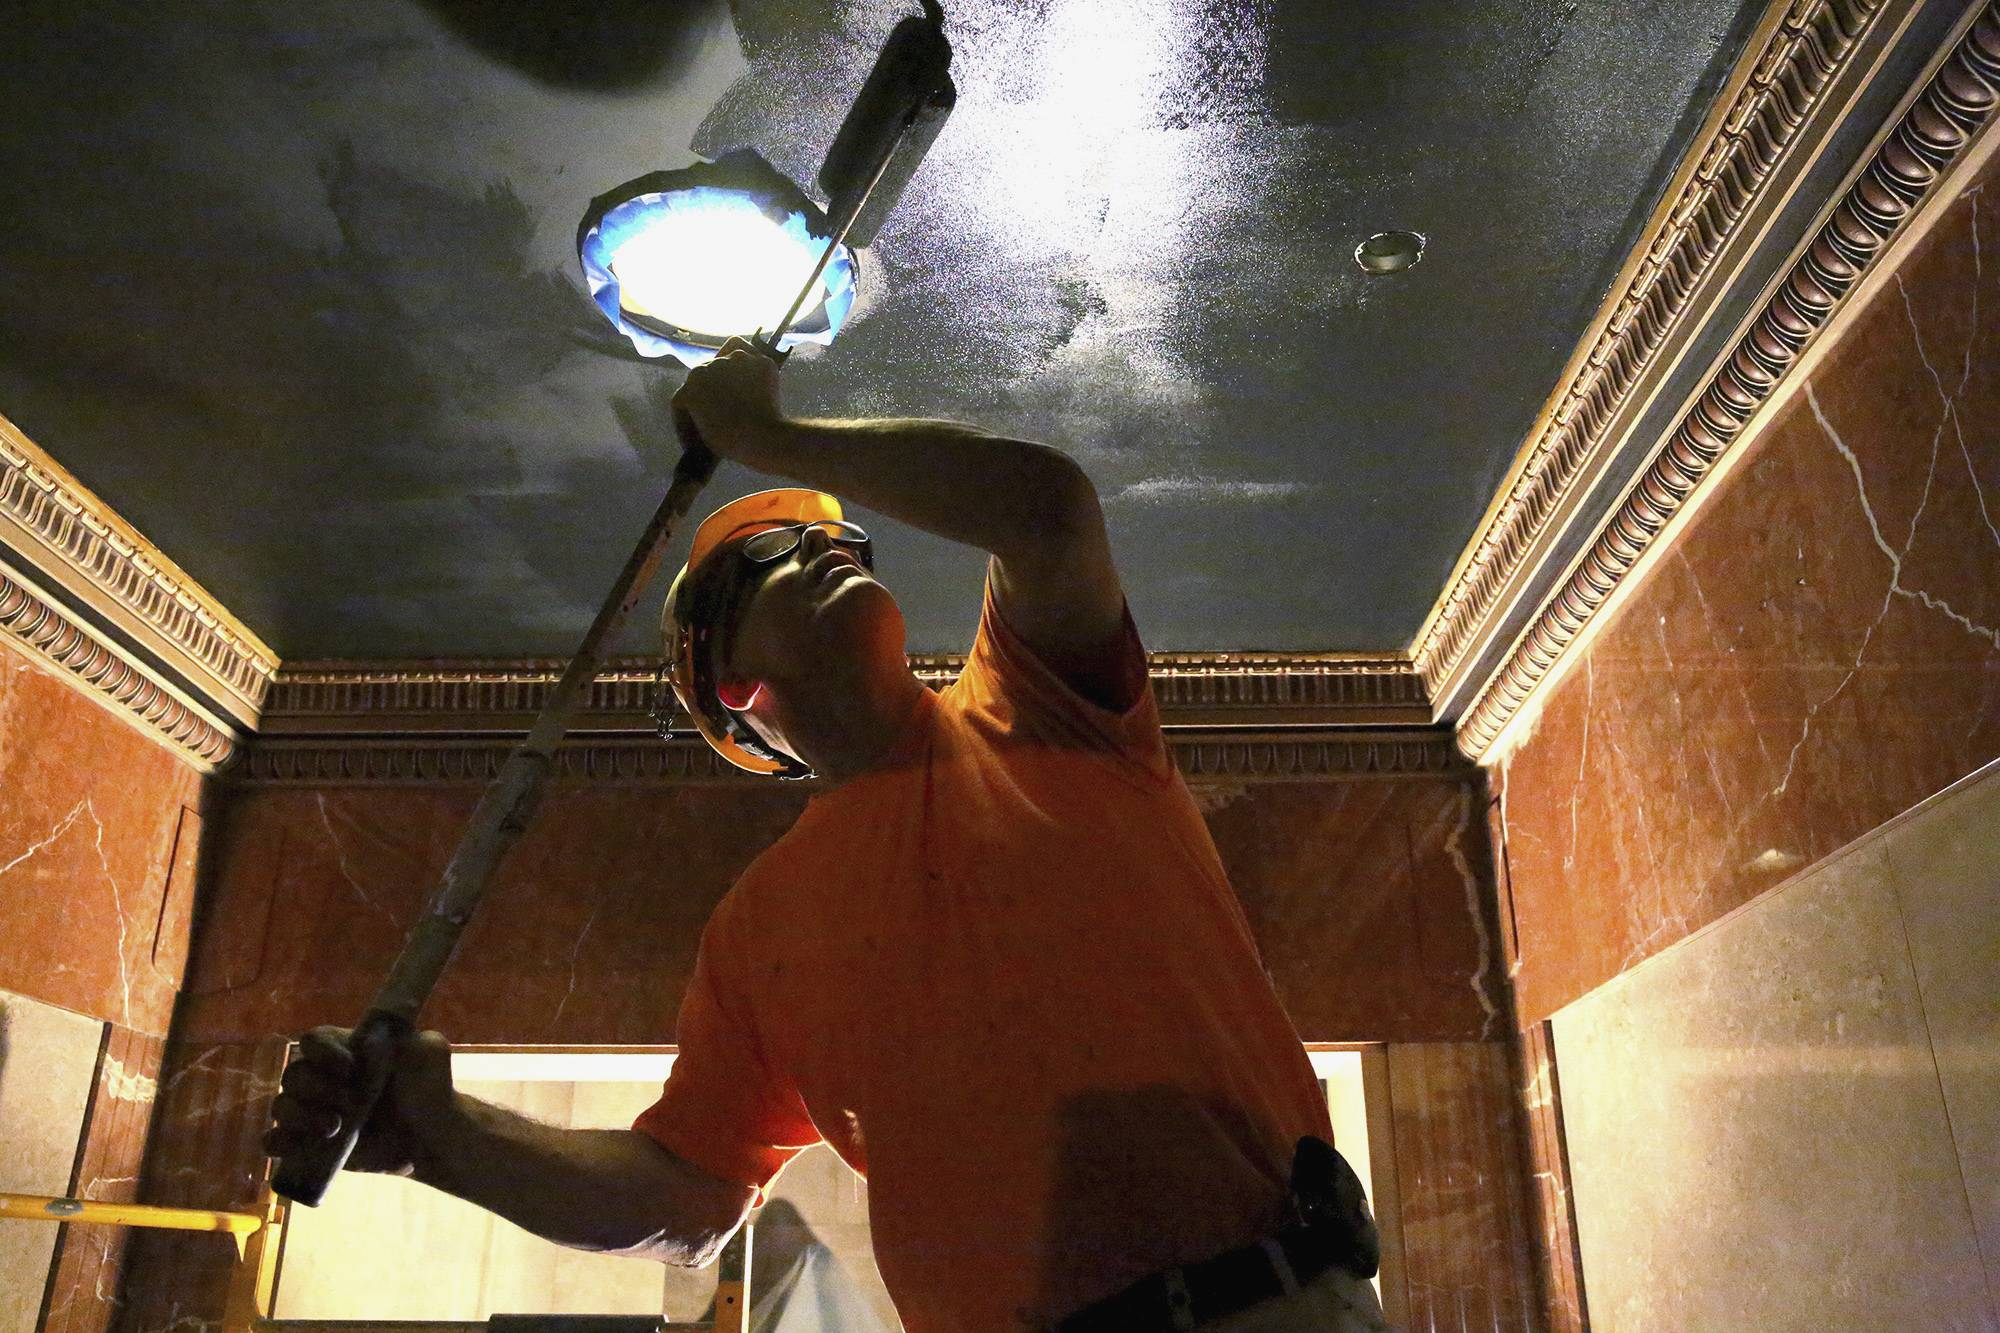 David Giese applies black paint to the ceiling of a hallway at the Abraham Lincoln tomb in the Oak Ridge Cemetery in Springfield.